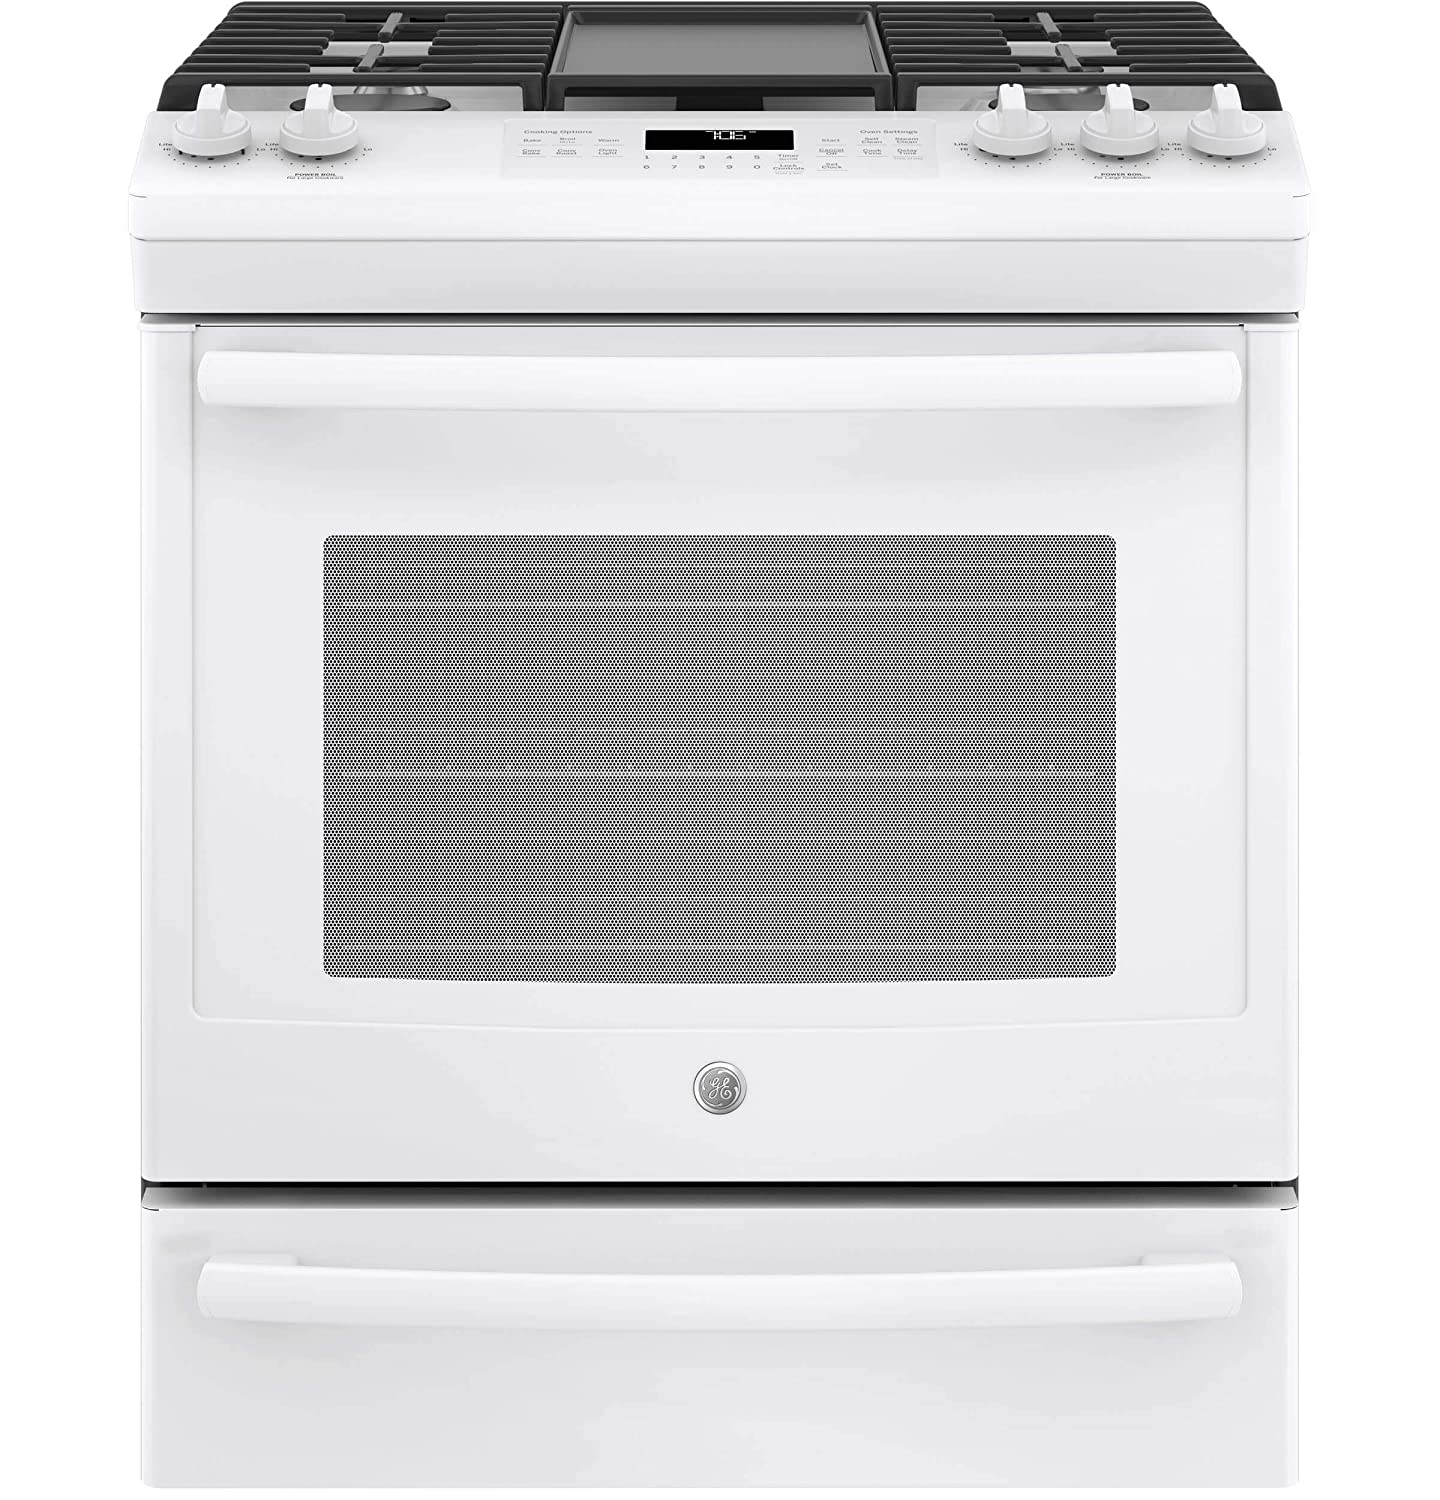 GE JGS760DELWW 30 Inch Slide-in Gas Range with Sealed Burner Cooktop, 5.6 cu. ft. Primary Oven Capacity, in White (Certified Refurbished)